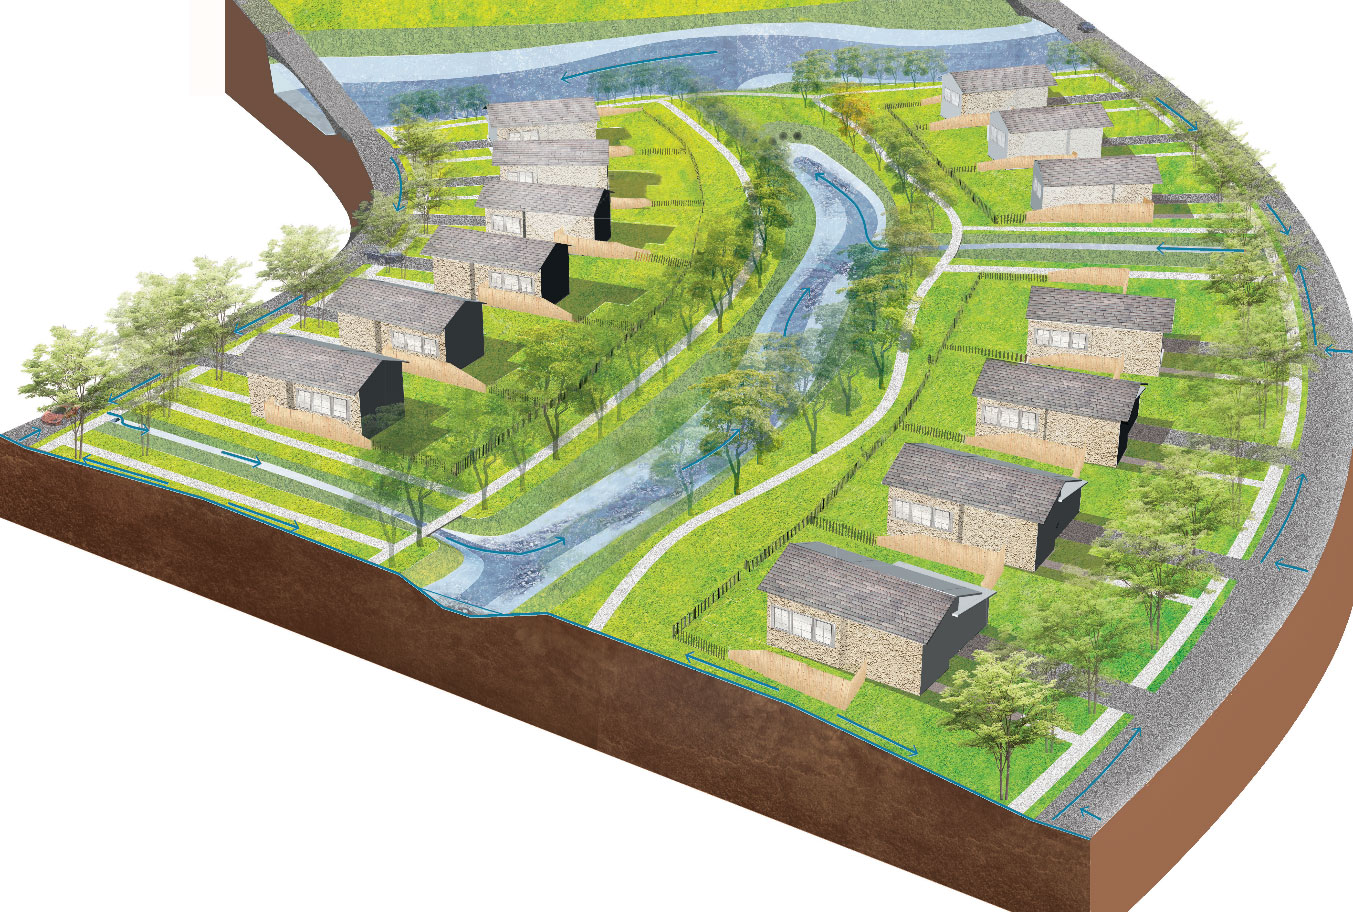 Feasibility study rendering of natural drainage residential development (or low impact development) with creek system and linear detention, infiltration, and stormwater quality features.